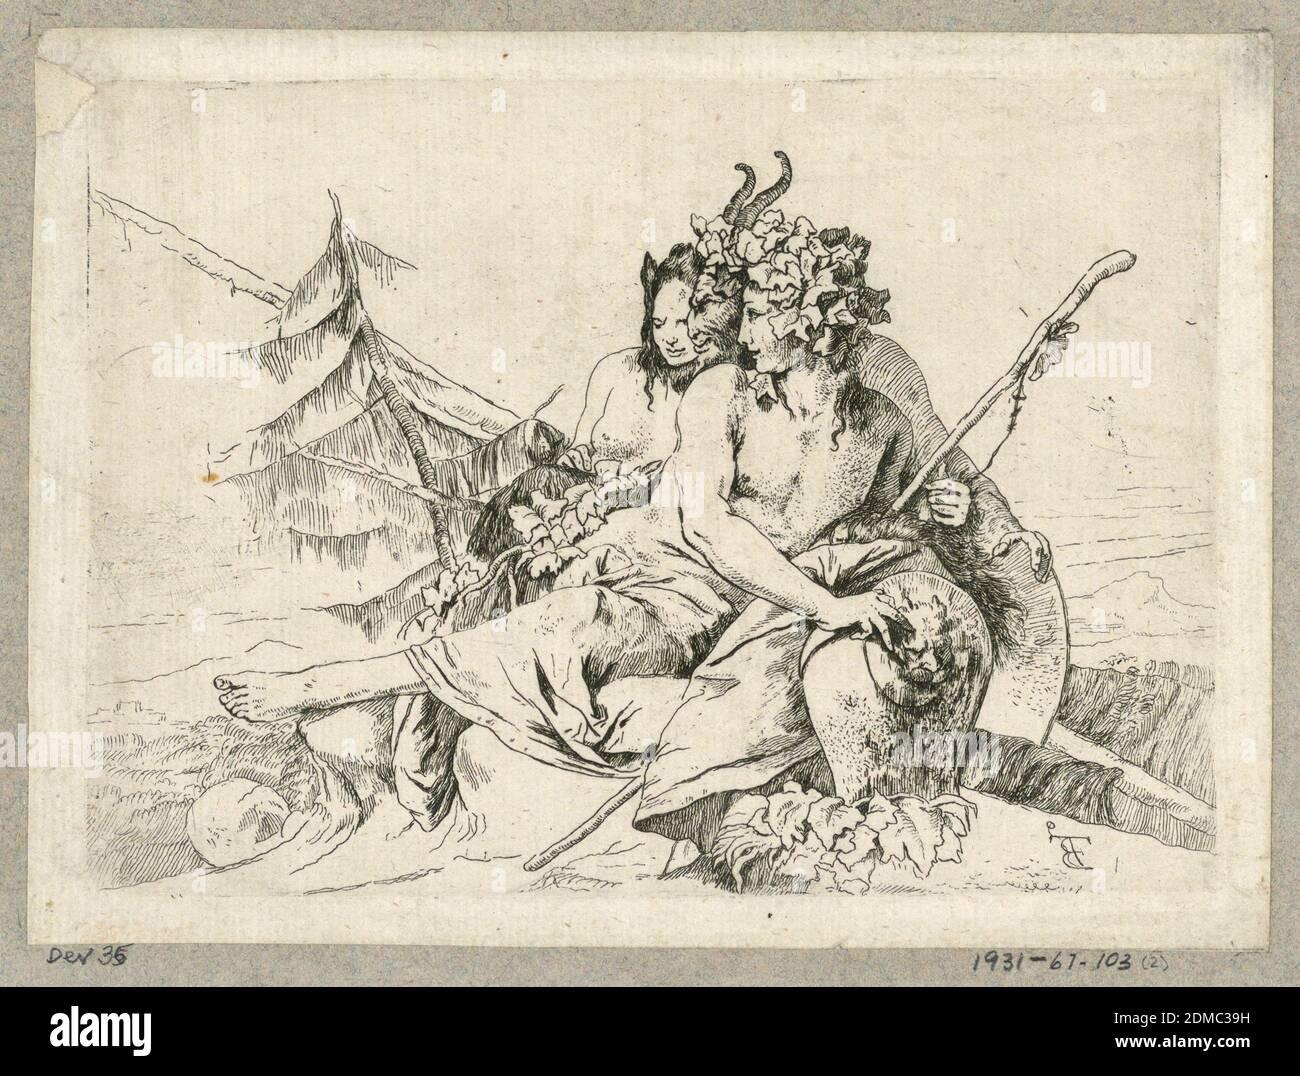 Copy of Bacchante, Satyr, and Female Faun, from the series Scherzi di Fantasia, Giovanni Battista Tiepolo, Italian, 1692 - 1770, Etching on laid paper, In the center, a compact group of a bacchante, a satyr and a female faun. They face left. The bacchante holds a thyrsus in her left hand and her right hand rests on a vase. In the background, trees., Italy, 1750–1760, figures, Print Stock Photo